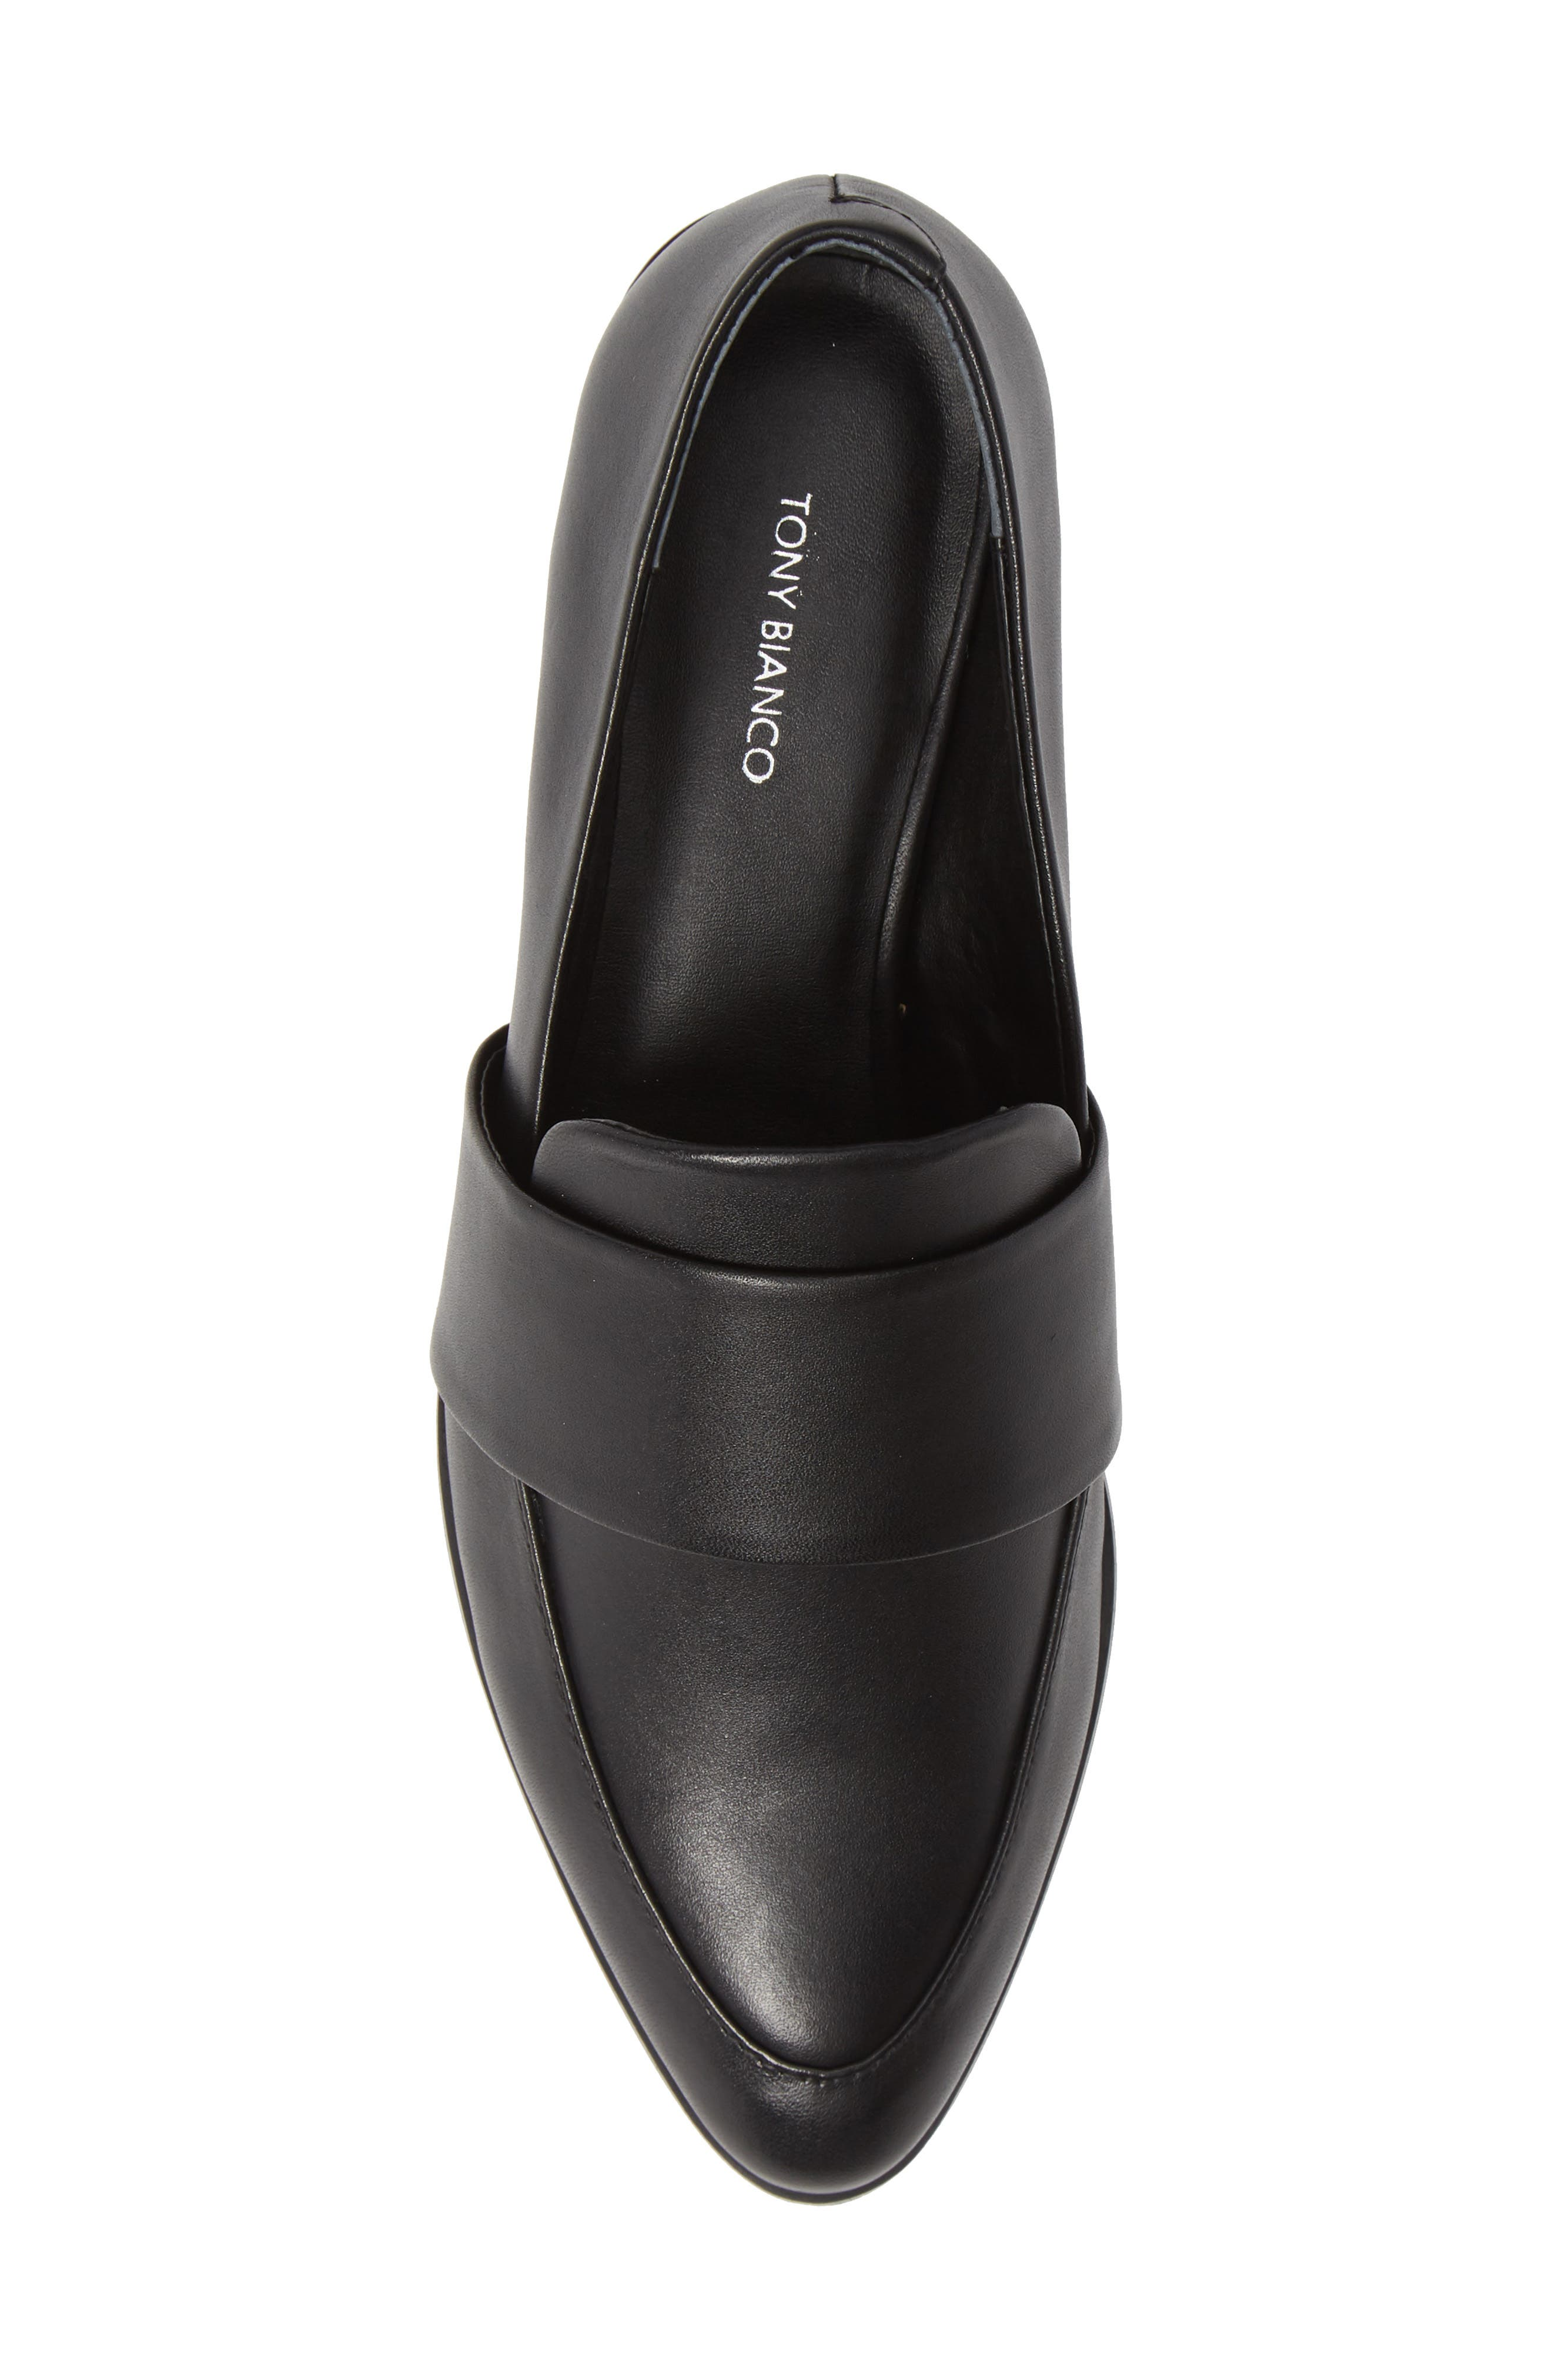 TONY BIANCO, Mayfair Loafer, Alternate thumbnail 5, color, BLACK LEATHER